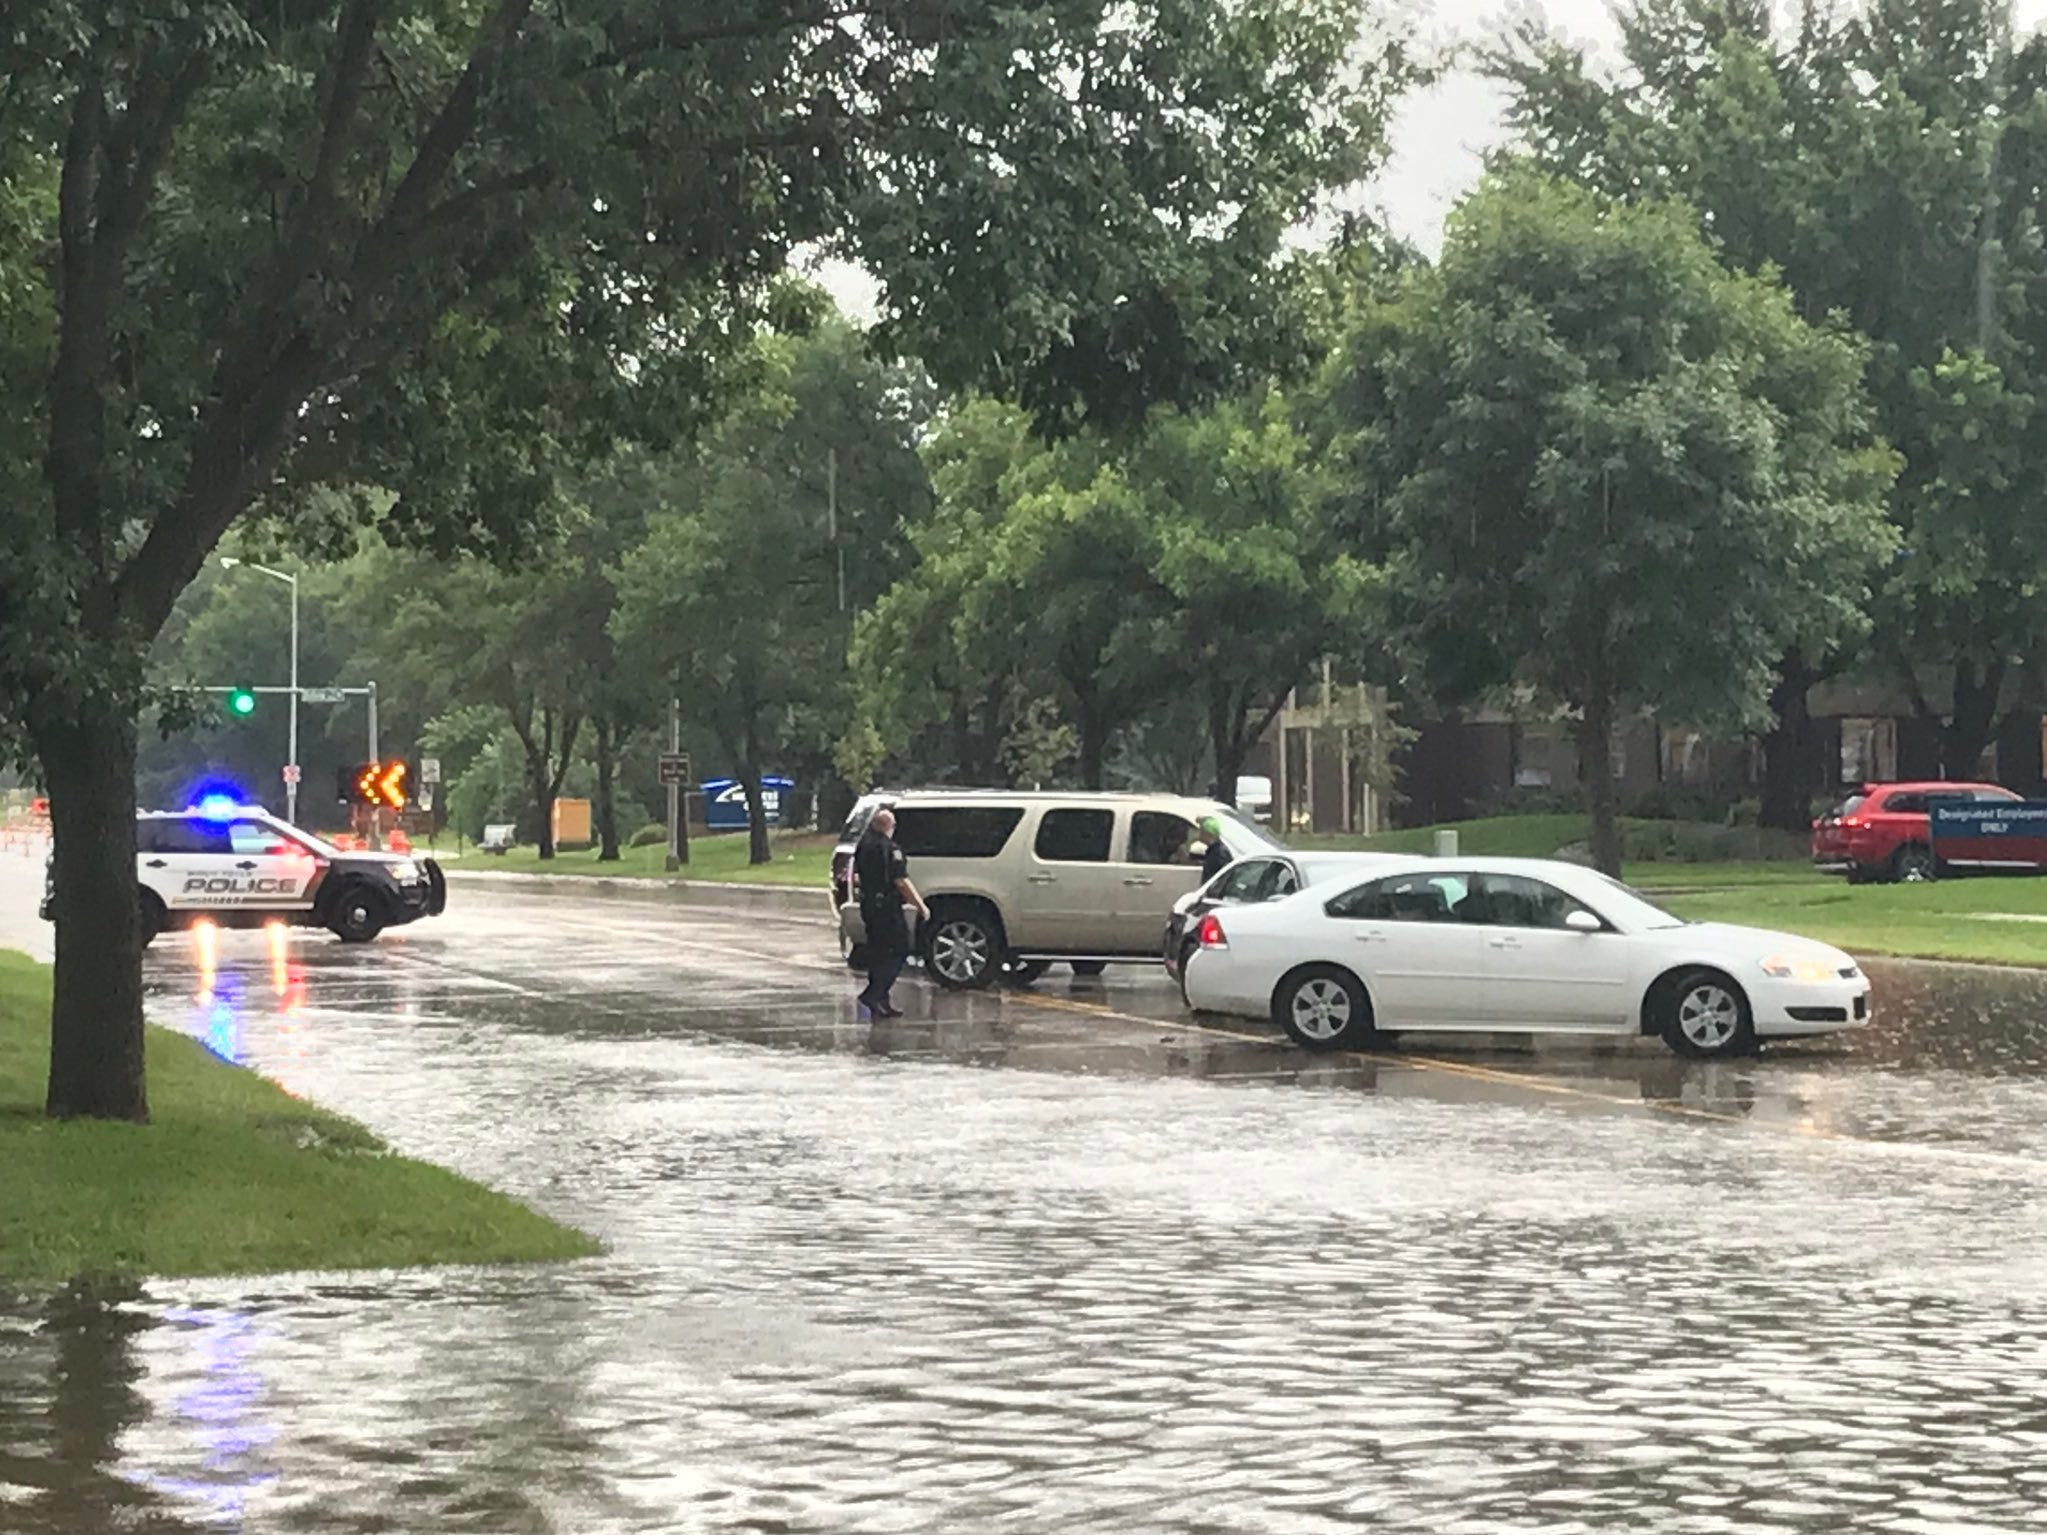 Two cars drive around a police barricade near a flooded road in Sioux Falls.